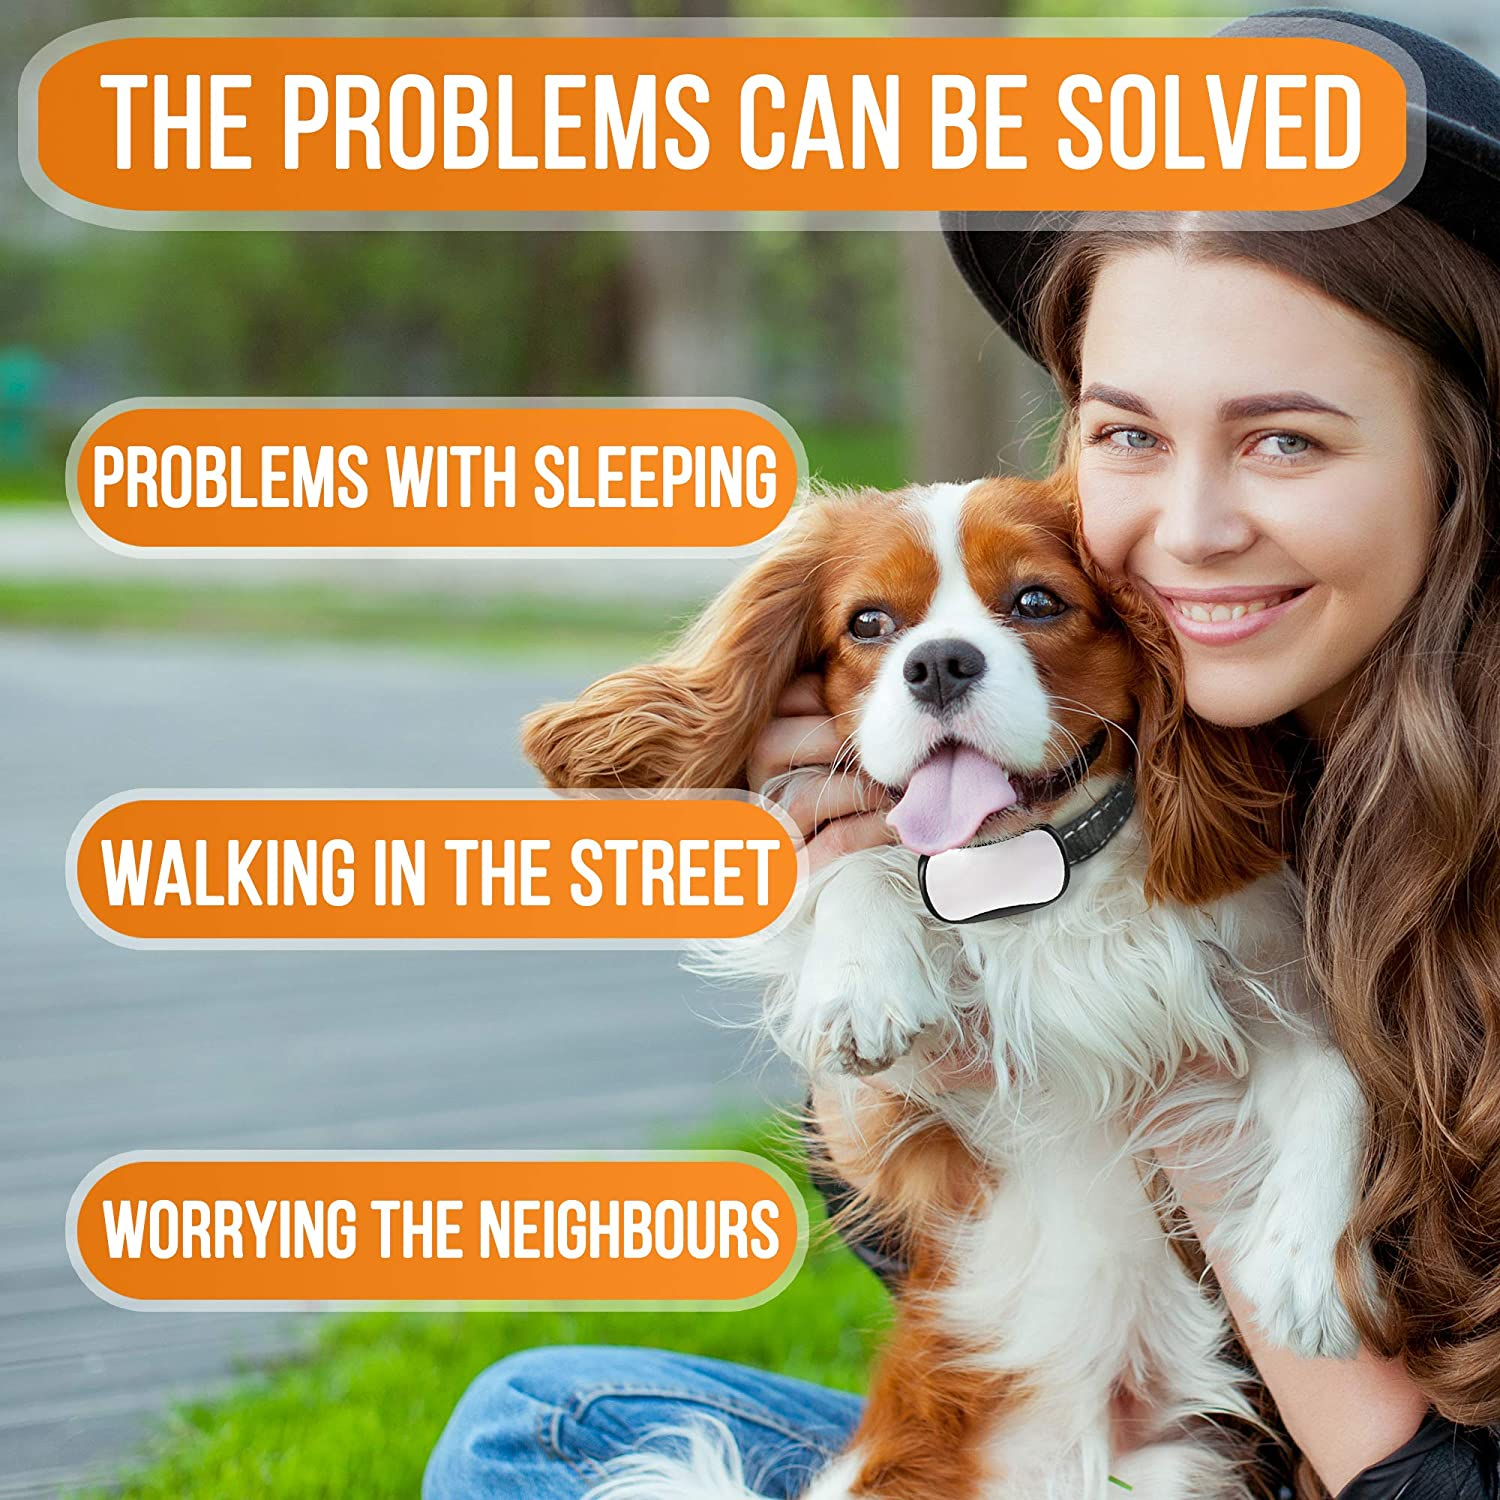 STOPWOOFER No Shock Humane and Effective Dog bark Collar for Small Medium and Large Dogs-Anti-Barking Collar Corrects Barking with Sound Warning and Vibration-Anti bark Collar no Dog Control